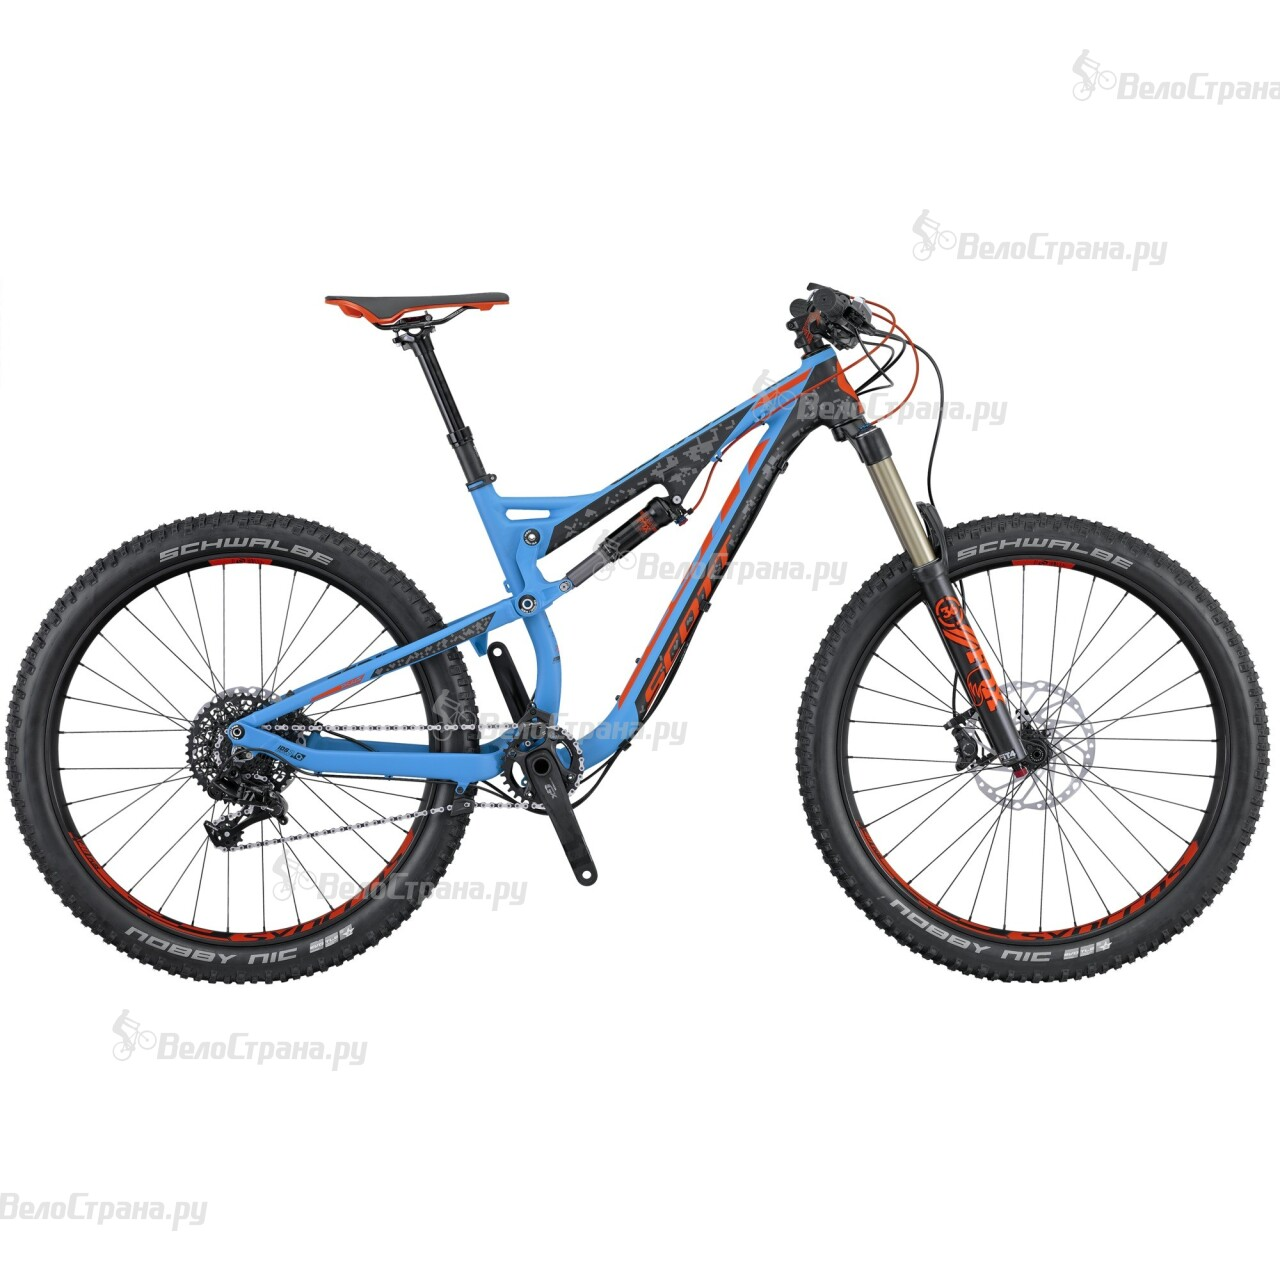 Велосипед Scott Genius LT 720 Plus (2016) scott scale 720 plus 2016